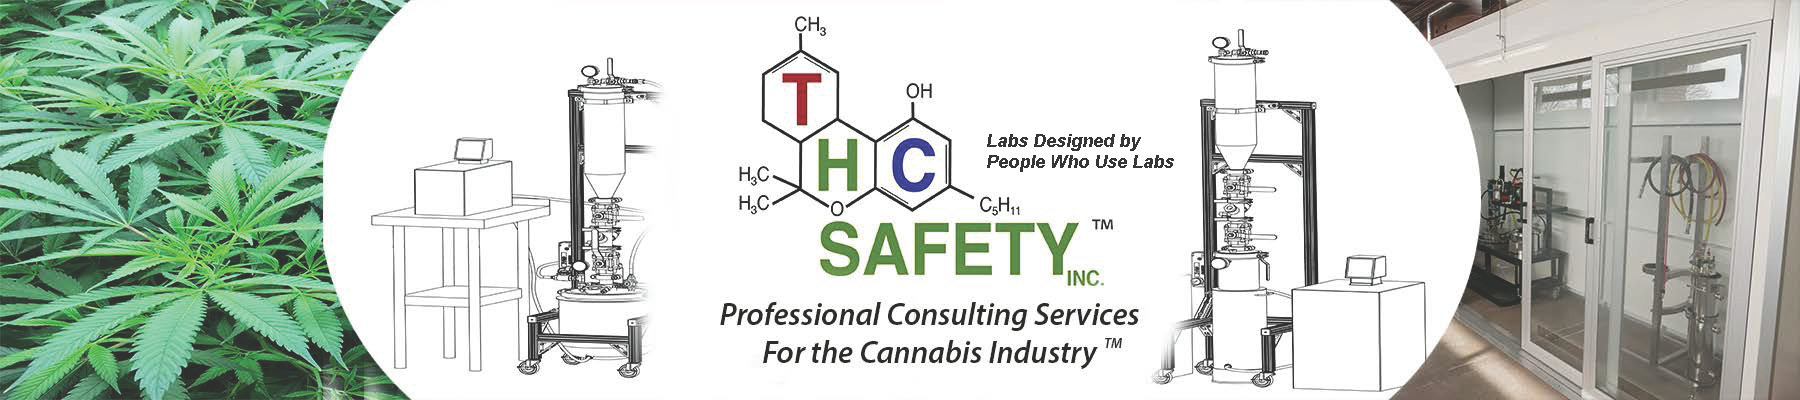 Industrial Hygiene Safety Services Thc Safety Inc